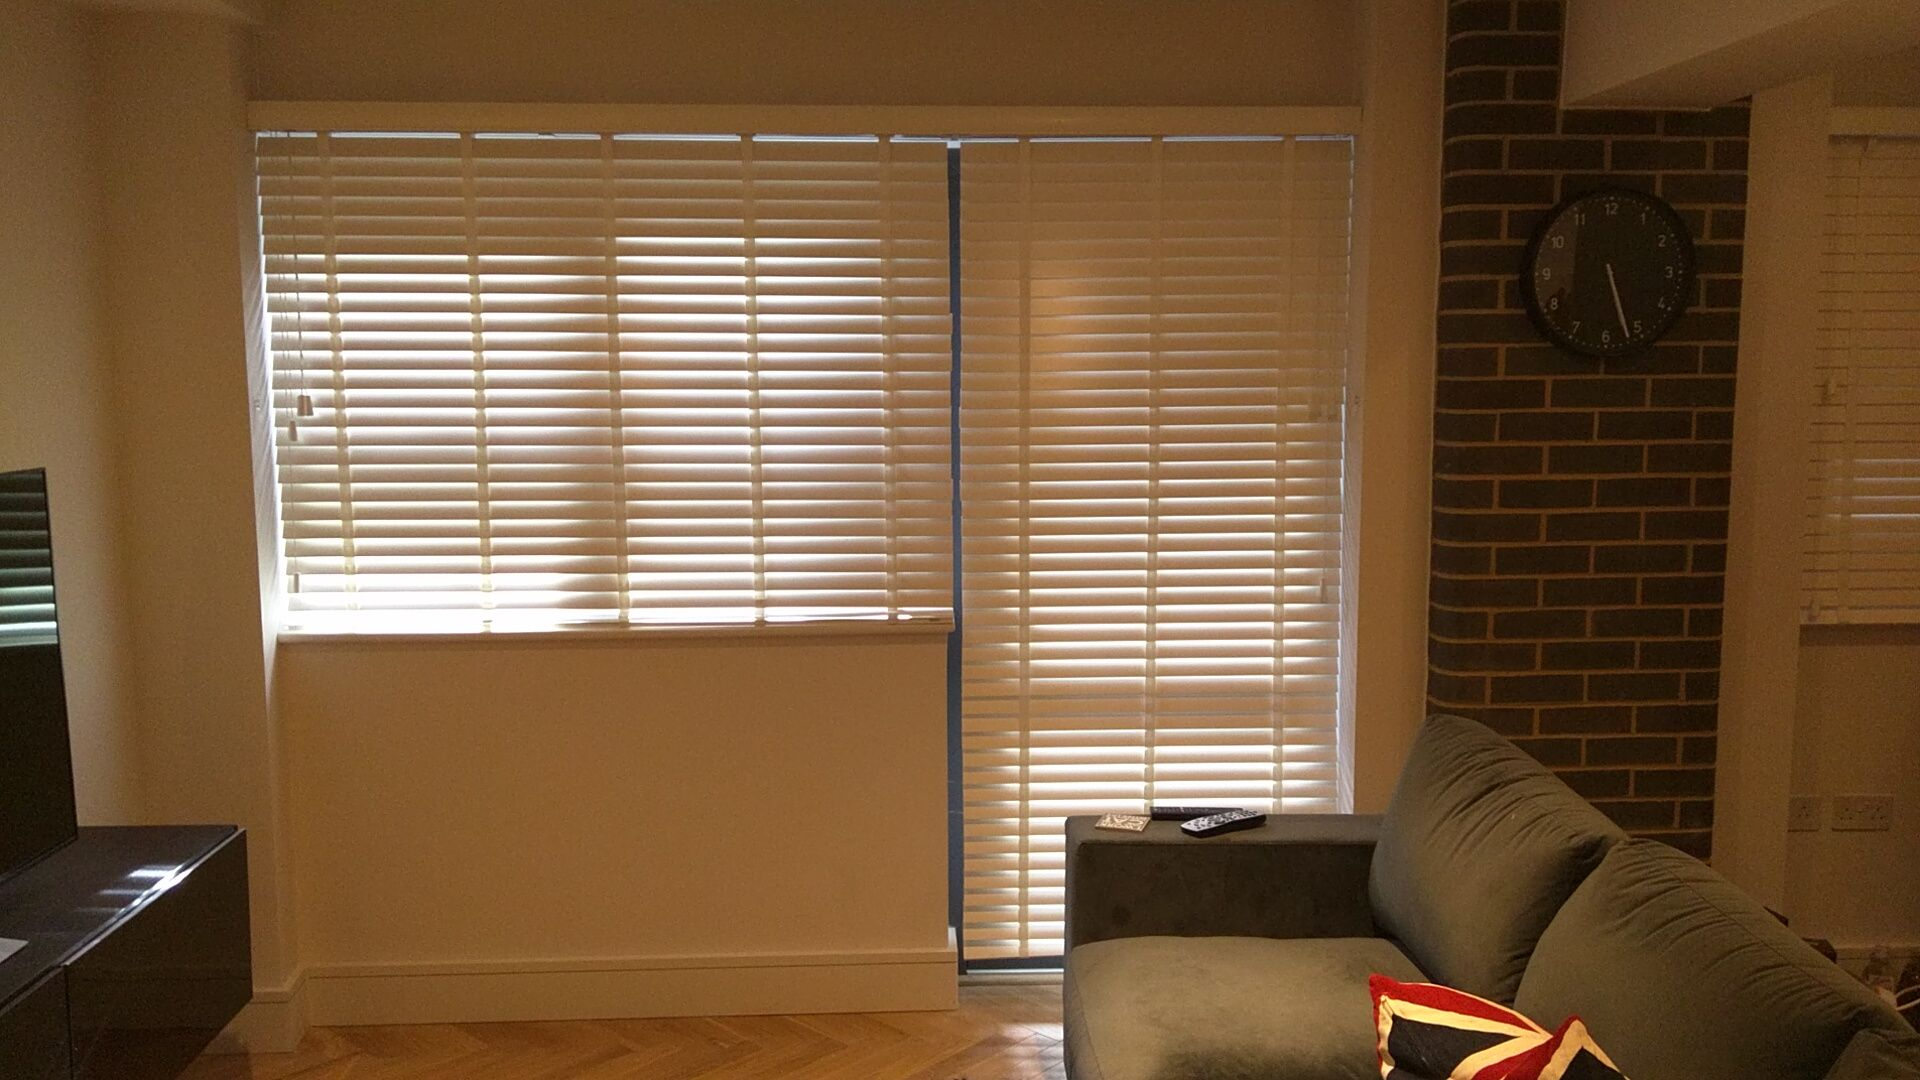 Wood Venetian Blinds Fitted To Apartment At Hunts Paper Factory Development In Fulham London Wooden Venetian Living Room Blinds Blinds Design Modern Blinds